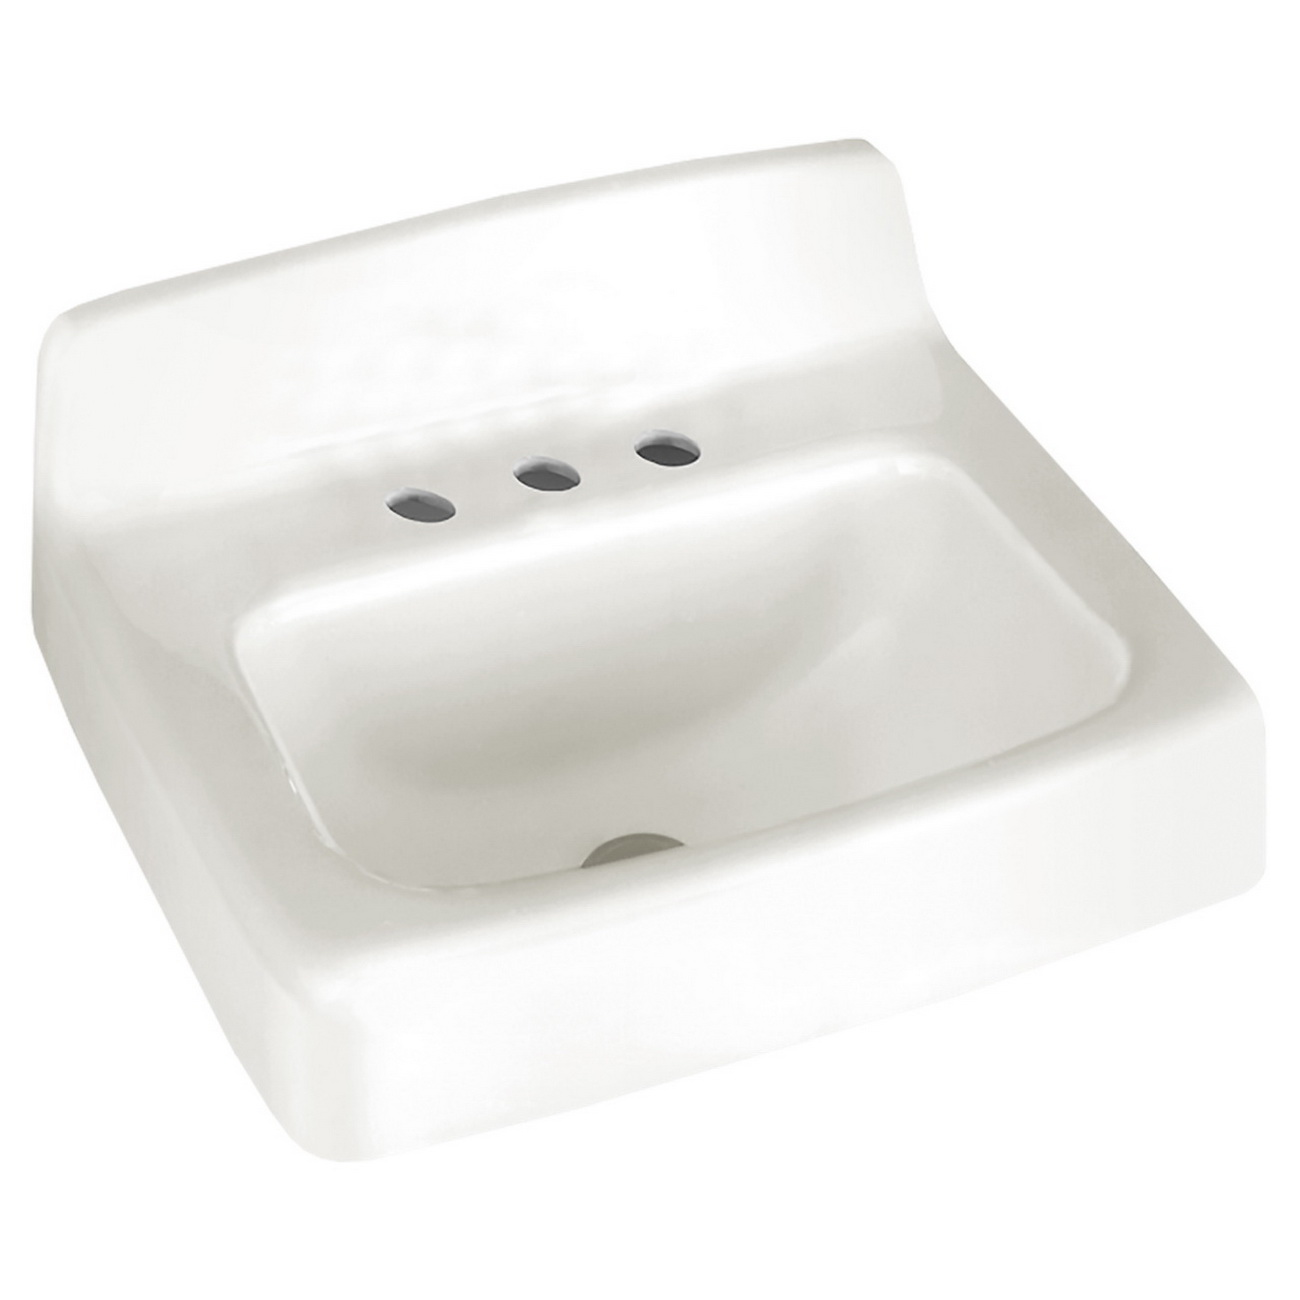 American Standard Regalyn™ 4867.001.020 Glossy Porcelain/White Enameled Cast Iron Wall Mount Lavatory Sink, 1-Bowl, 1-Faucet Holes